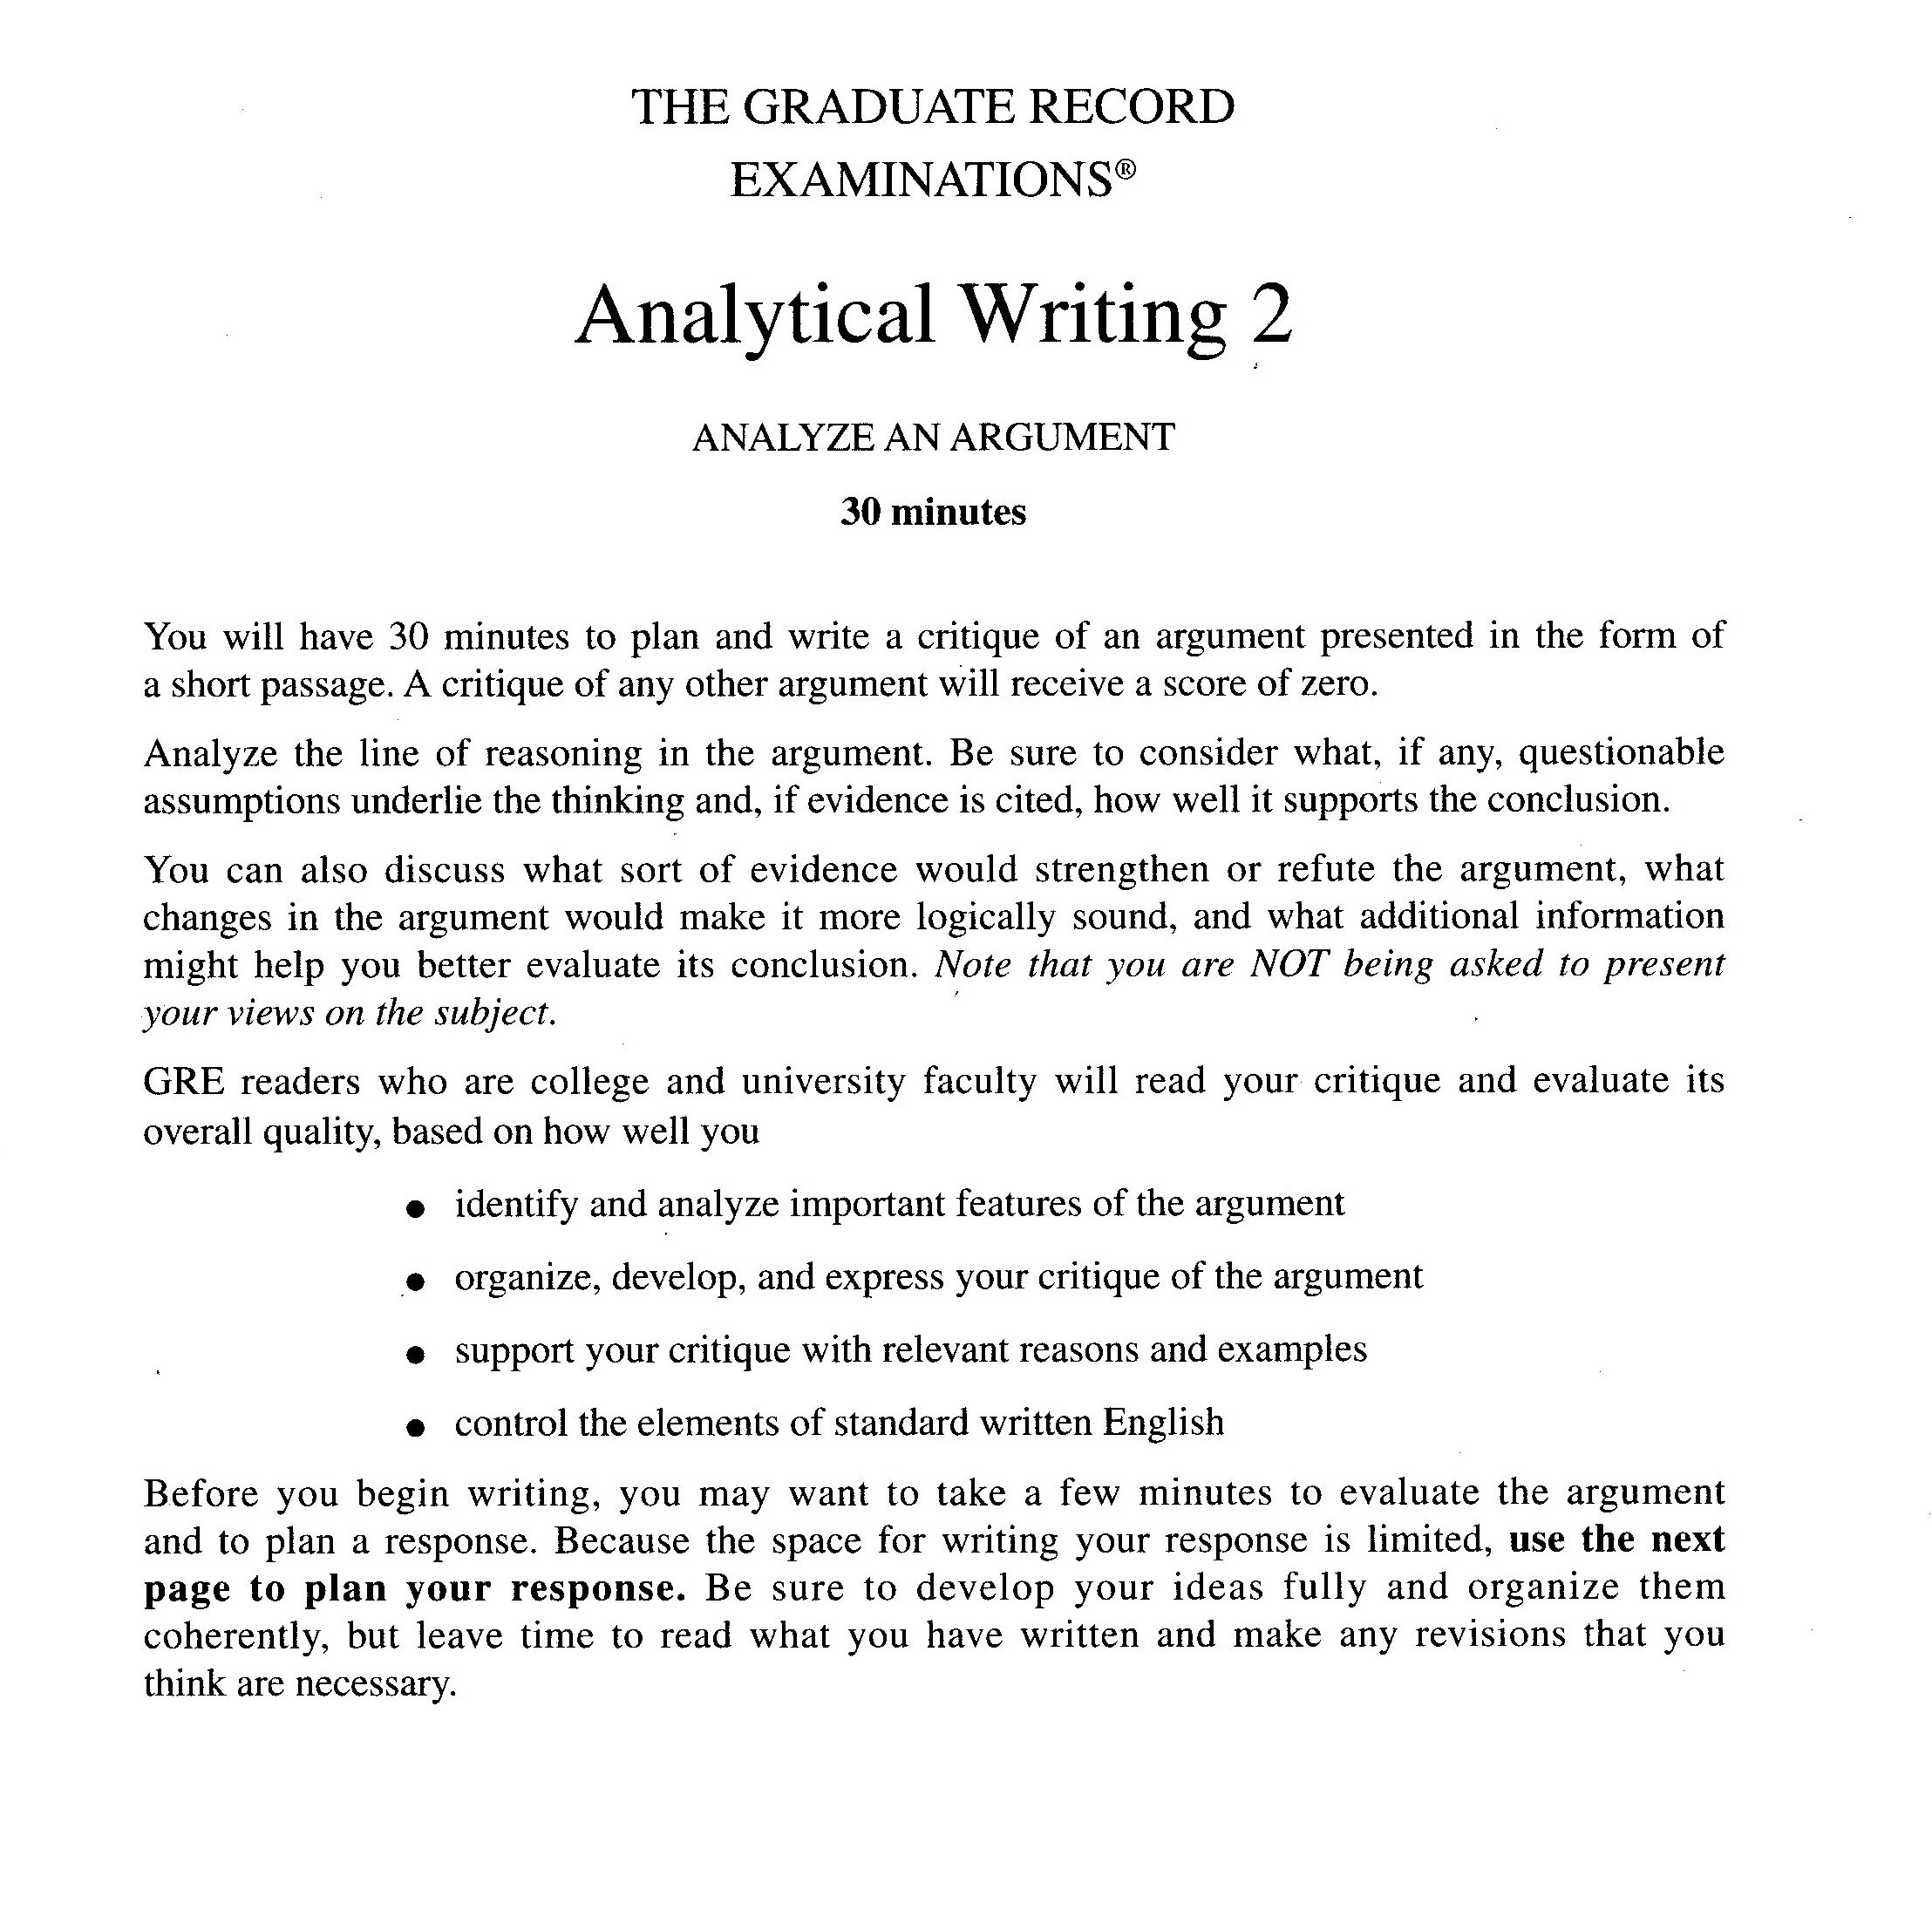 018 Gre Argument Essays Analytical20writing20response20task20directions20for20gre201 Unusual Essay Examples Sample Questions Analytical Writing Samples Full